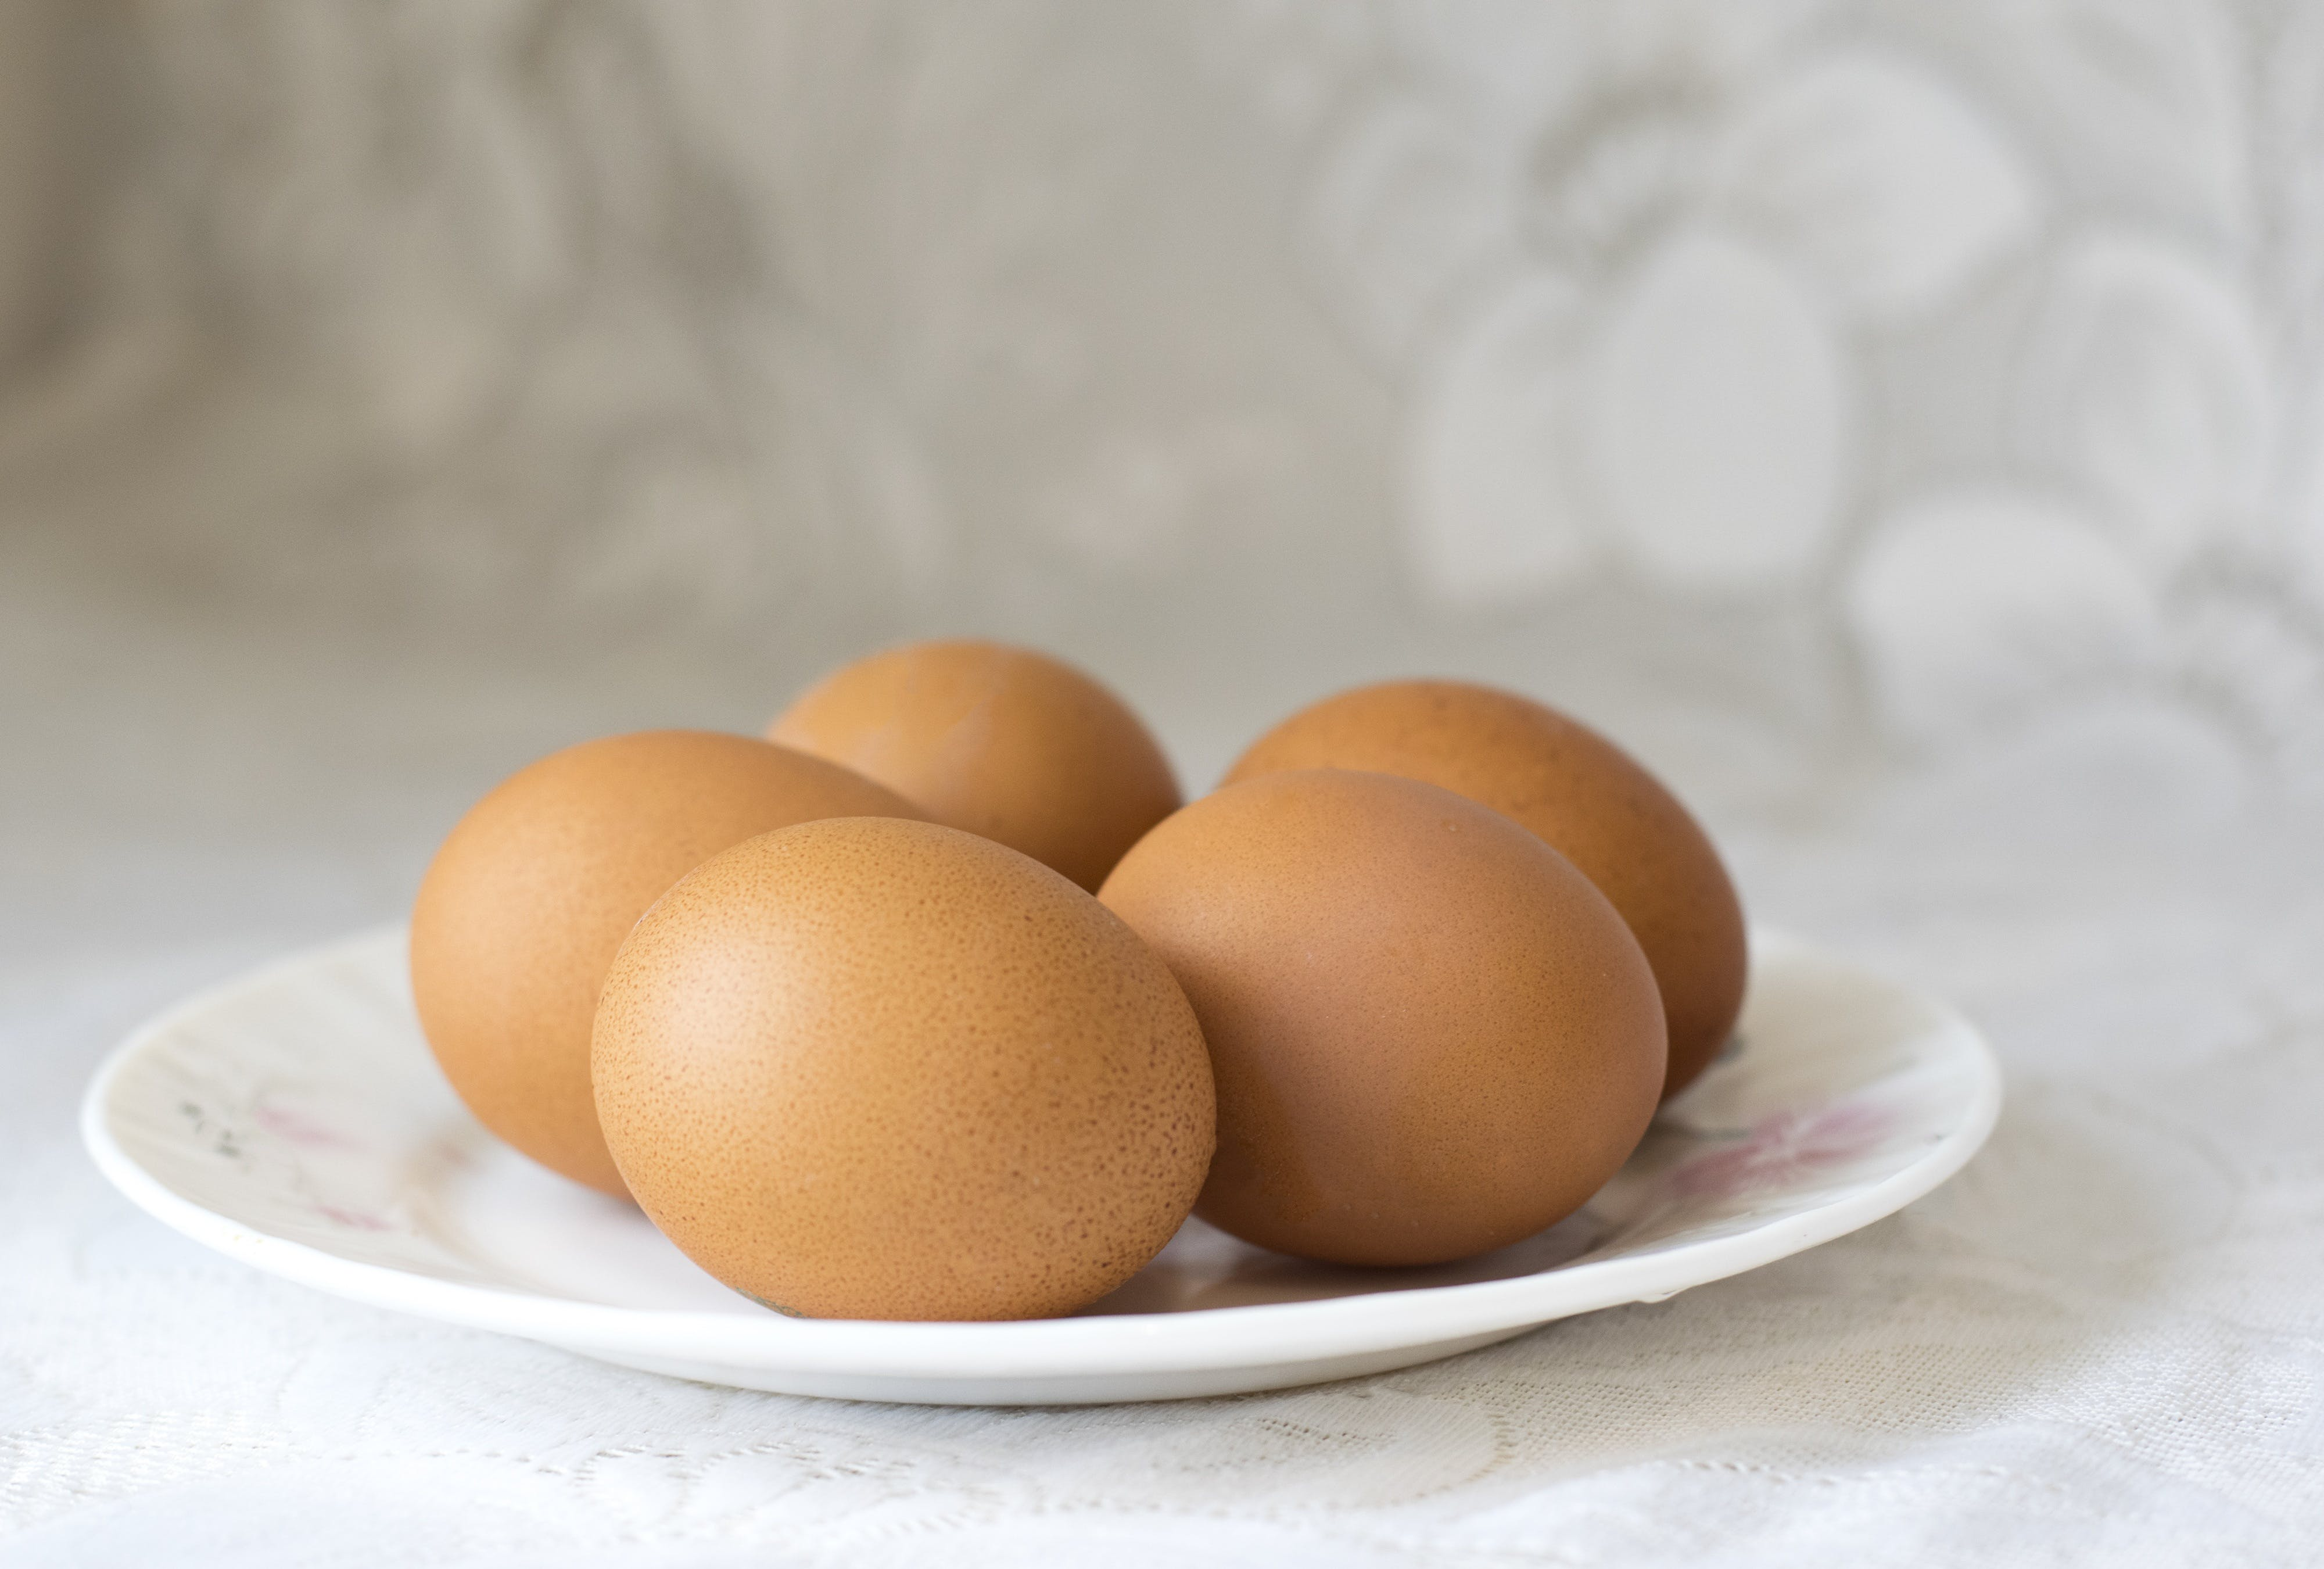 Five Organic Eggs on Plate